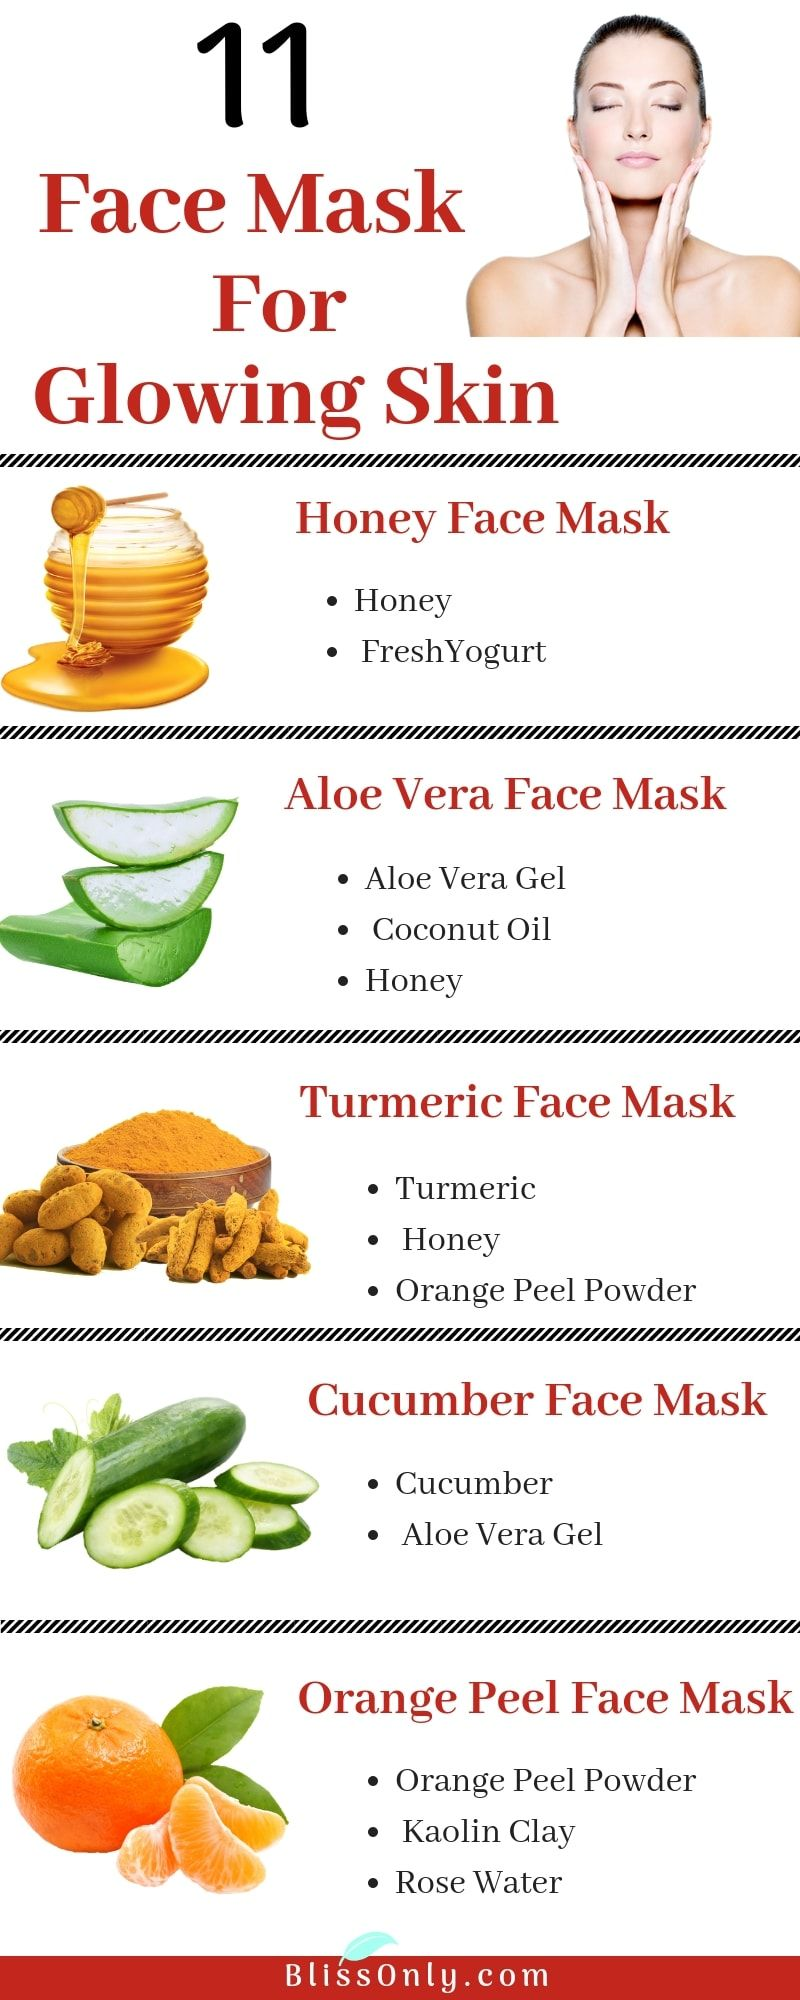 11 Simple Homemade Face Masks For Glowing Skin Blissonly Glowing Skin Mask Face Mask Diy Acne Cucumber Face Mask